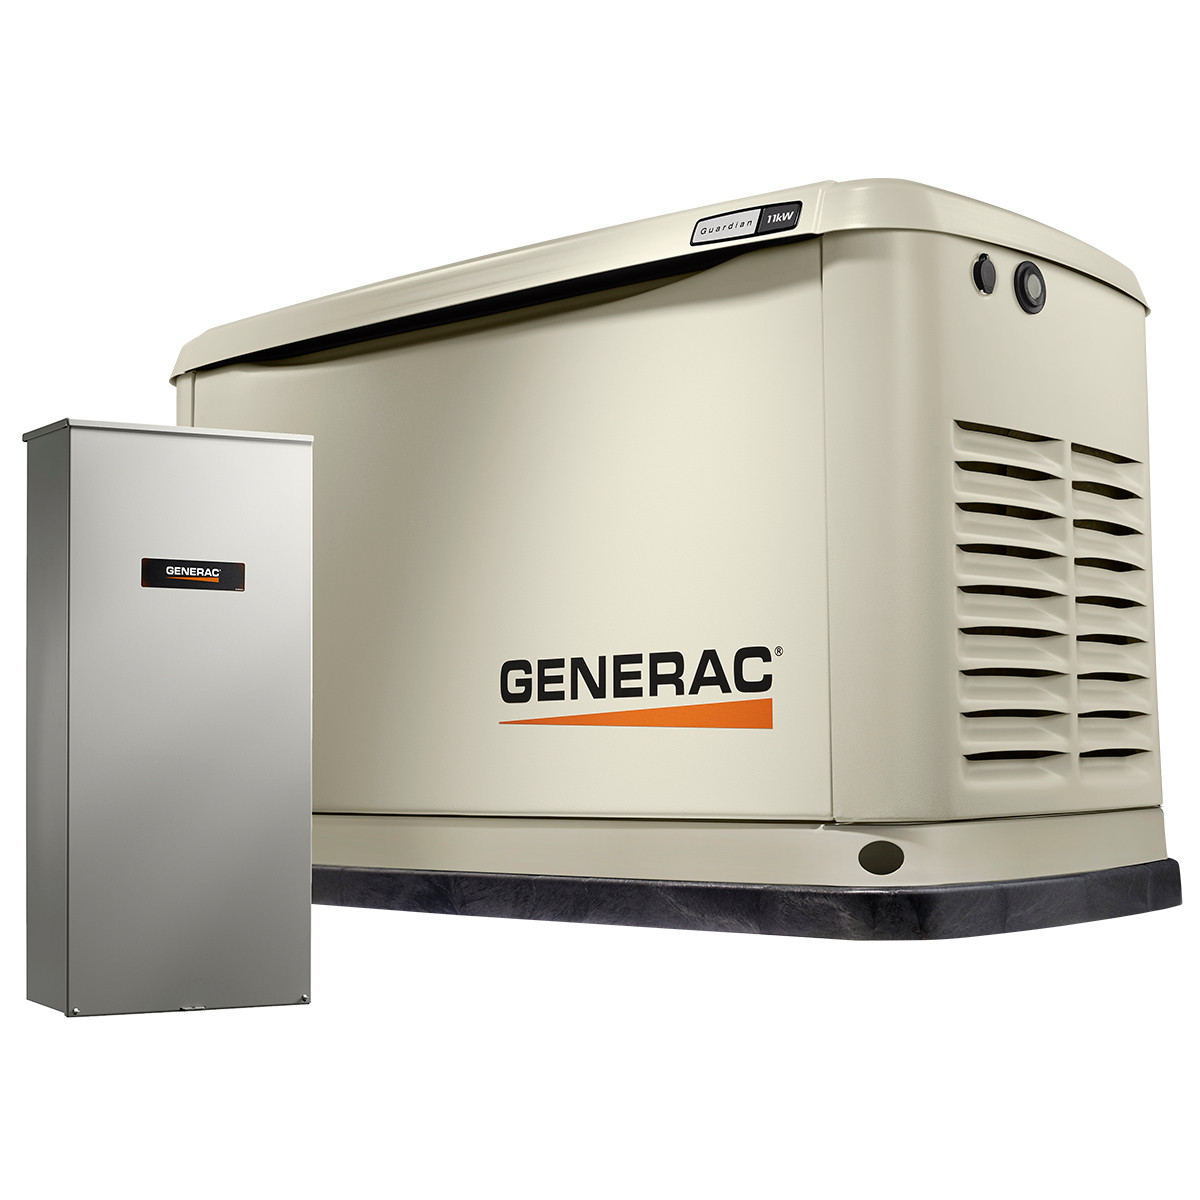 medium resolution of generac guardian 7033 11kw generator with 200a se transfer switch